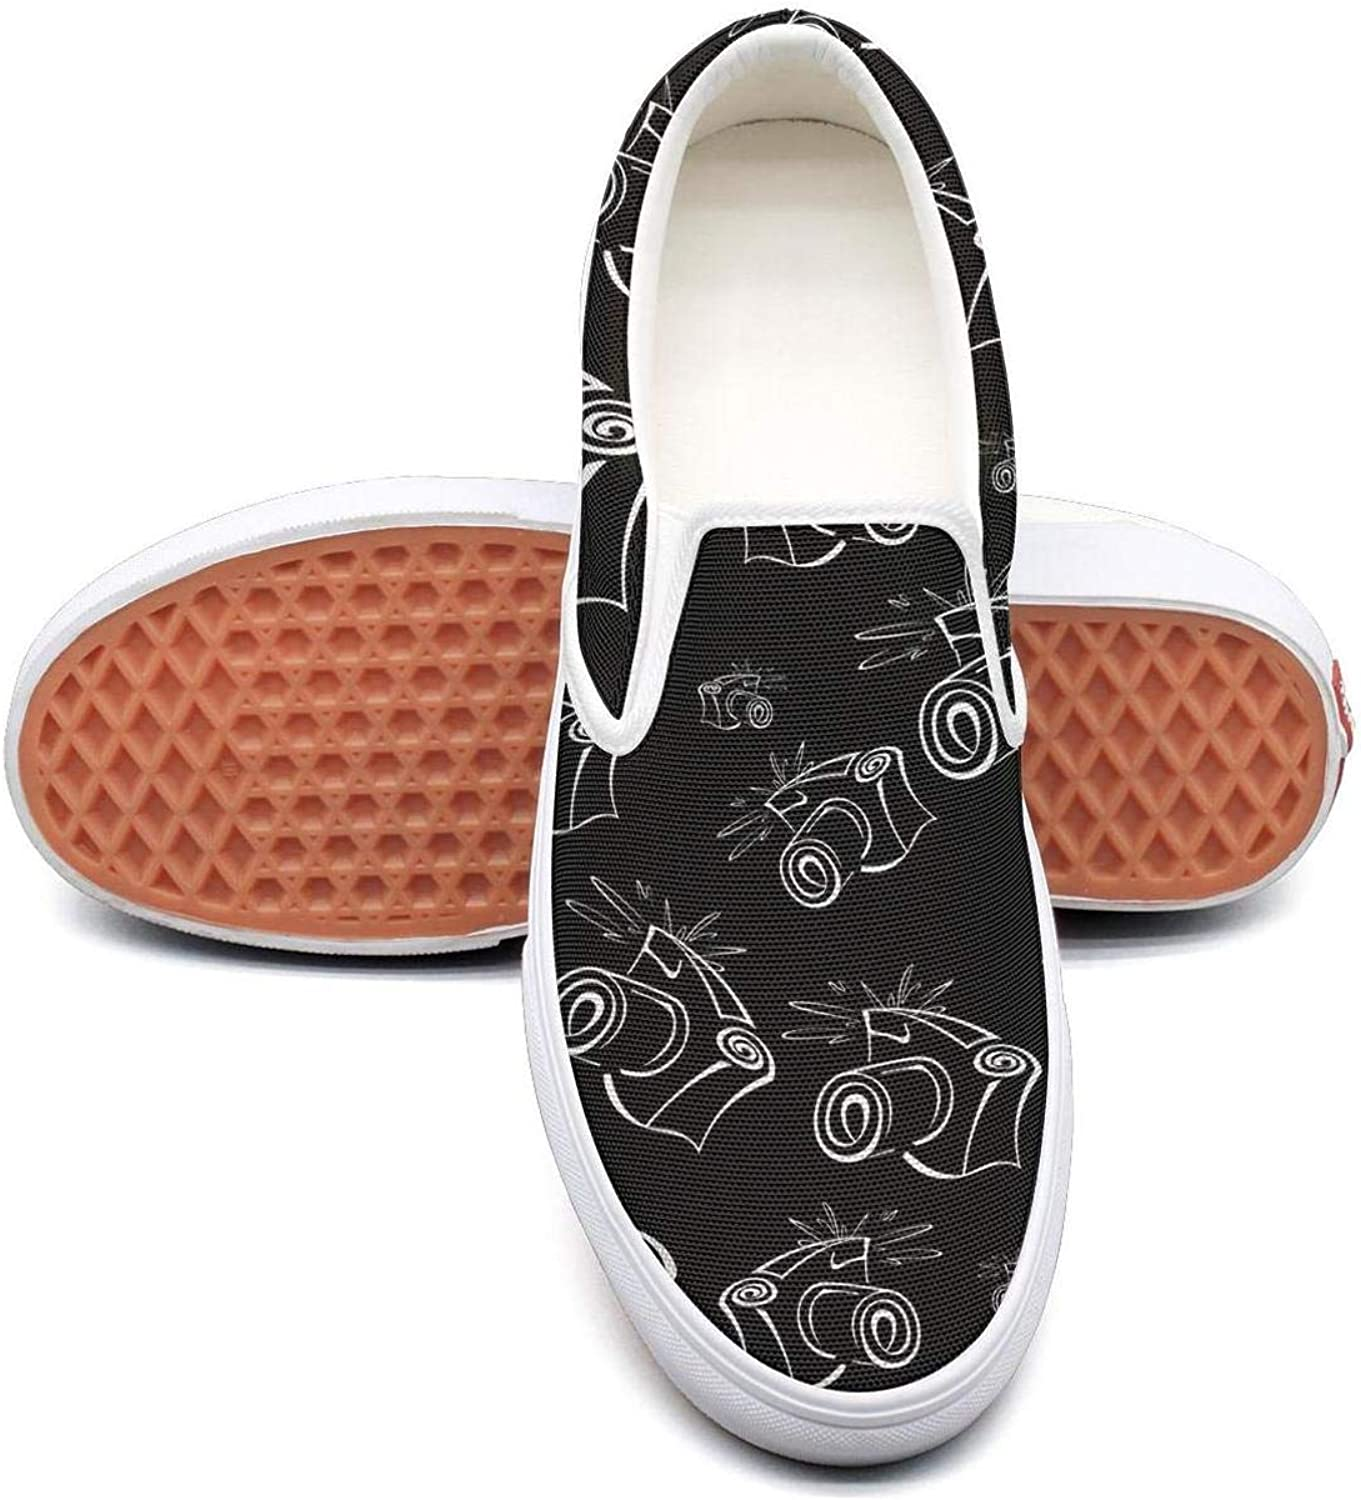 Refyds-es Black and White Contour Photo Camera Womens Fashion Slip on Low Top Lightweight Canvas Sneakers